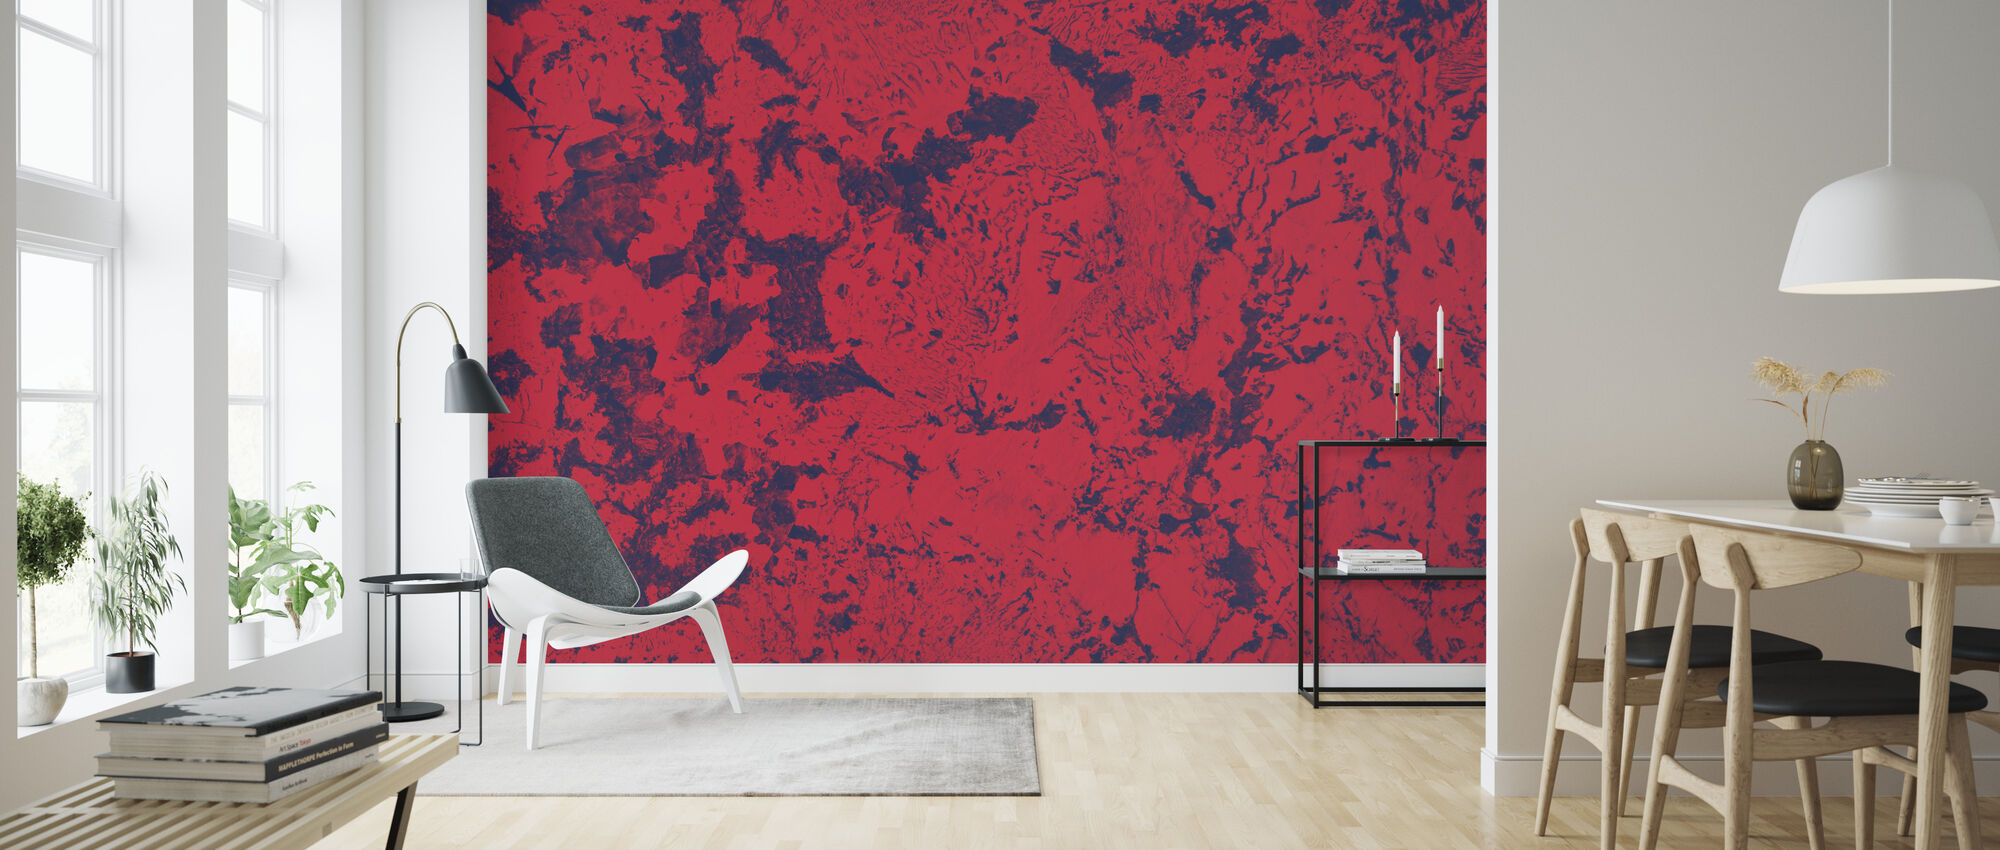 Red Rug Texture - Wallpaper - Living Room